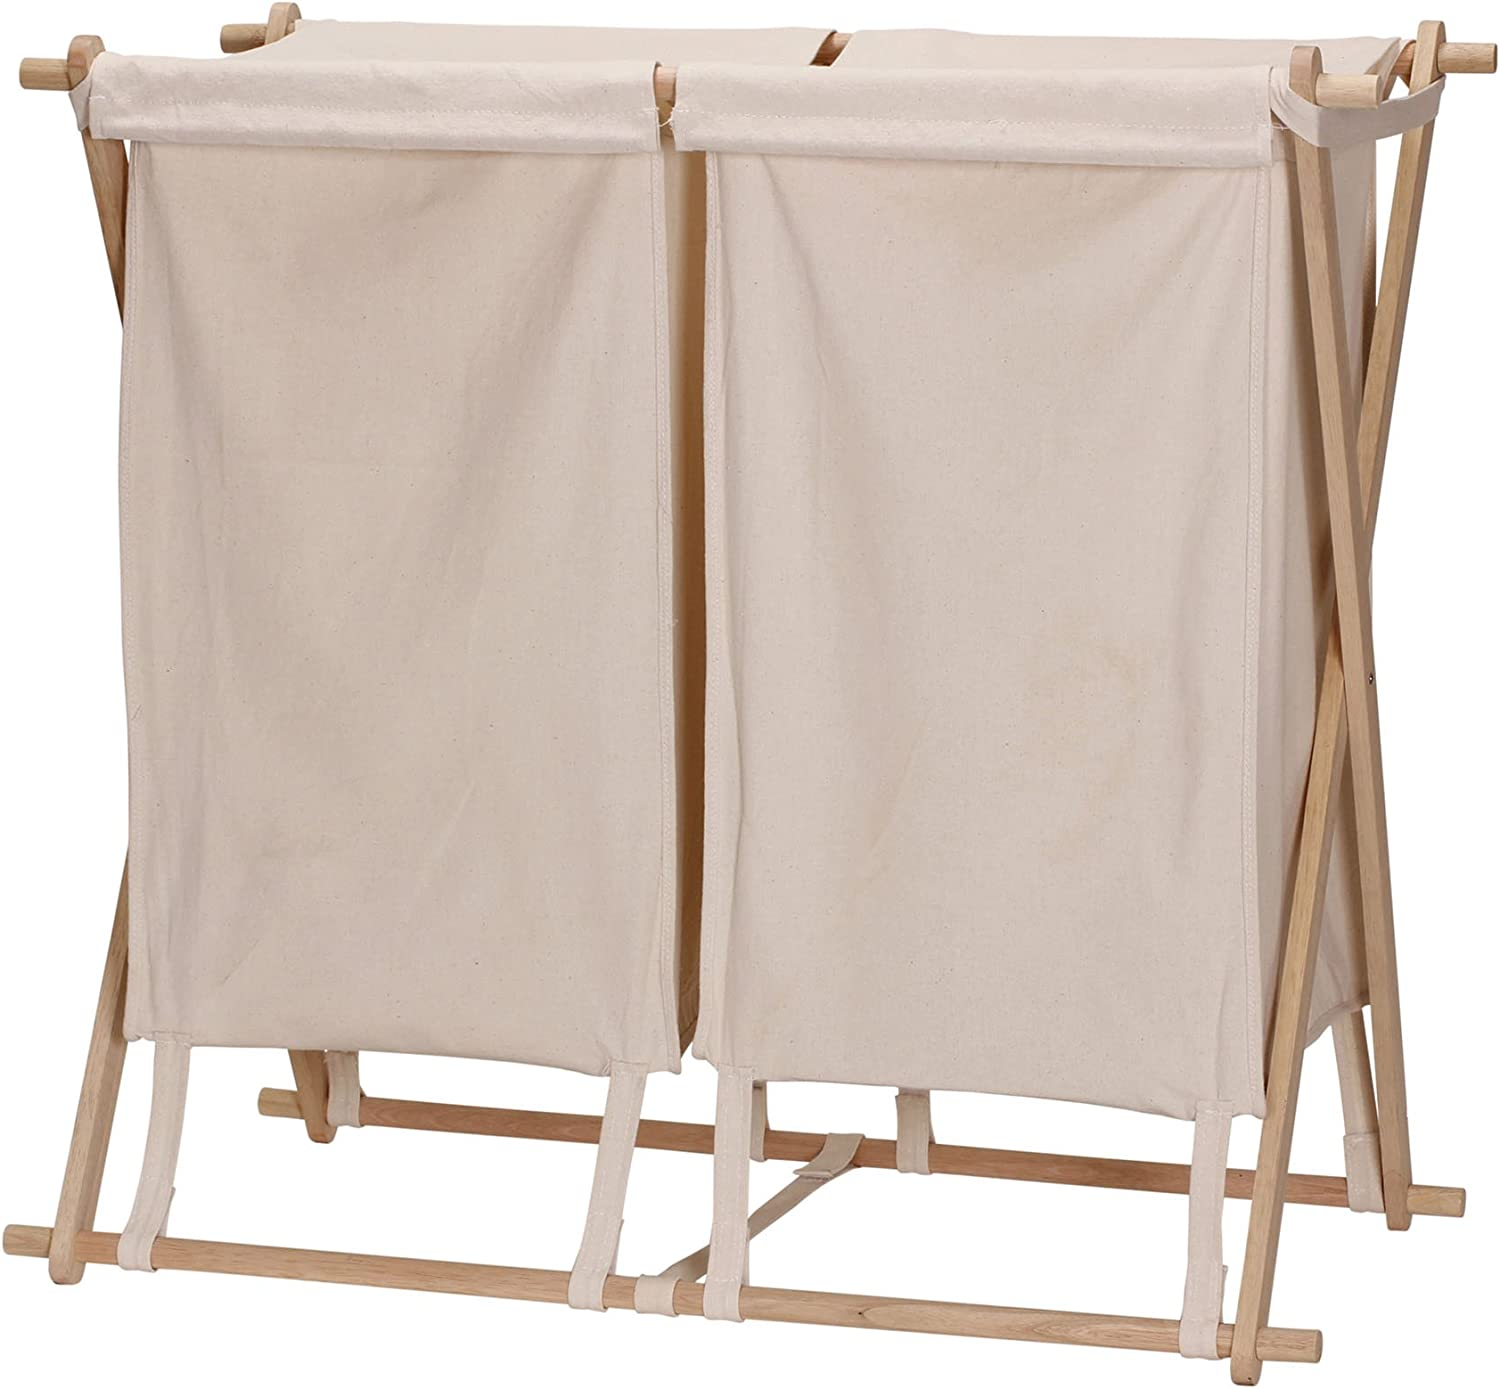 Household Essentials 6786-1 Collapsible Double X-Frame Laundry Hamper Sorter with Fold Over Lid